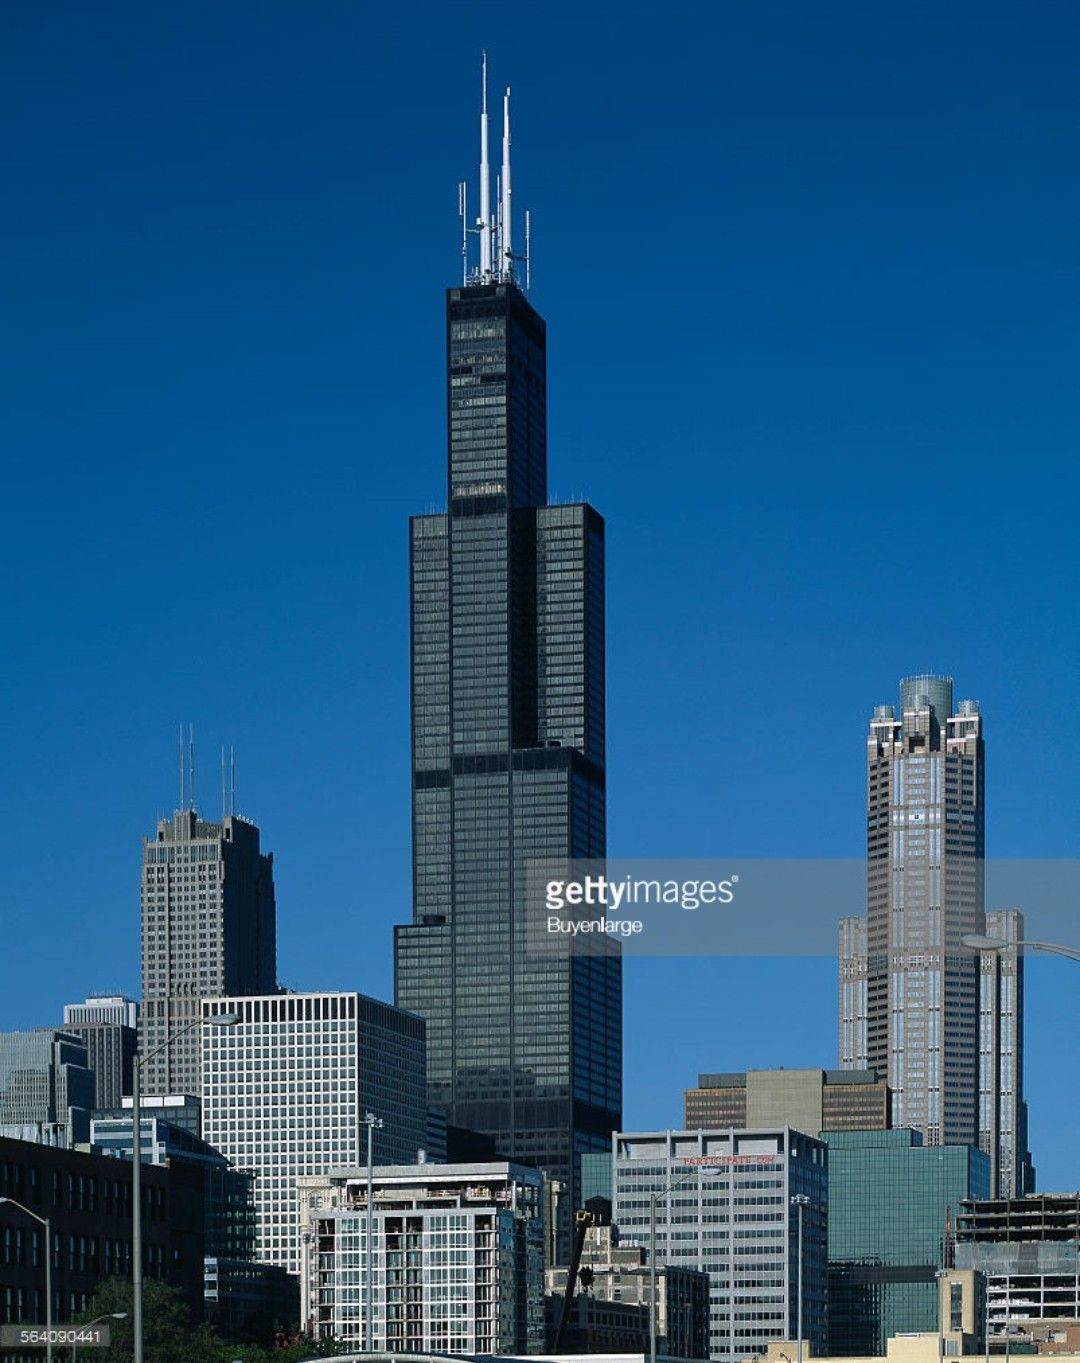 Sears Willis Tower At One Time The Tallest Building In The World Sears Tower Famous Architecture Willis Tower